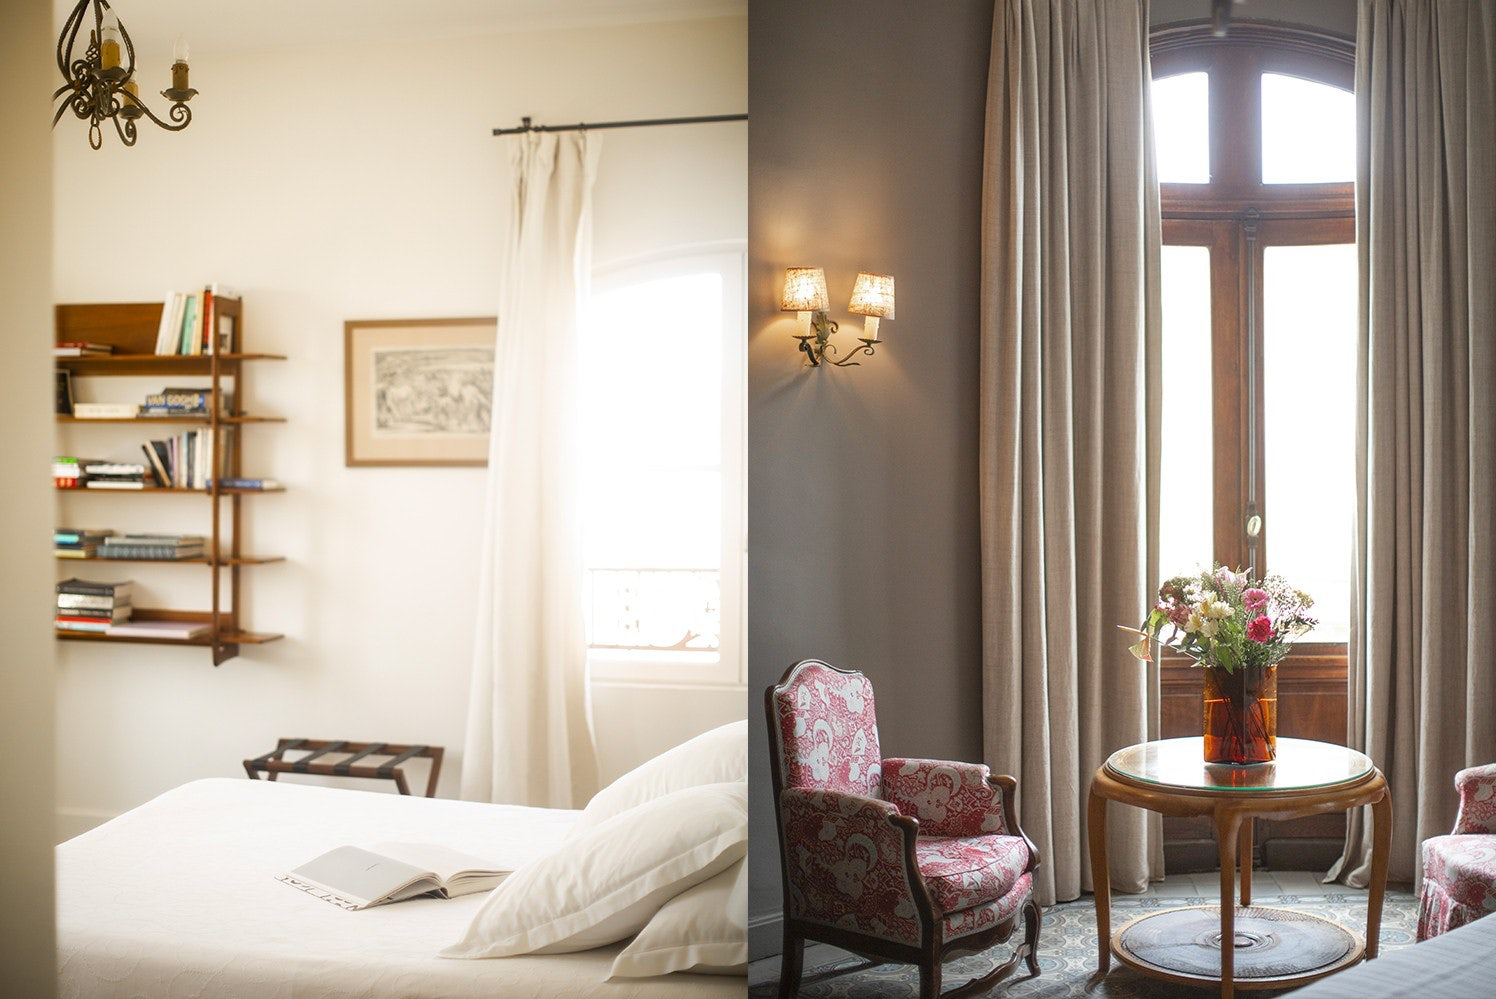 interior of bedroom and seating area of a suite at the Nord Pinus hotel in Arles